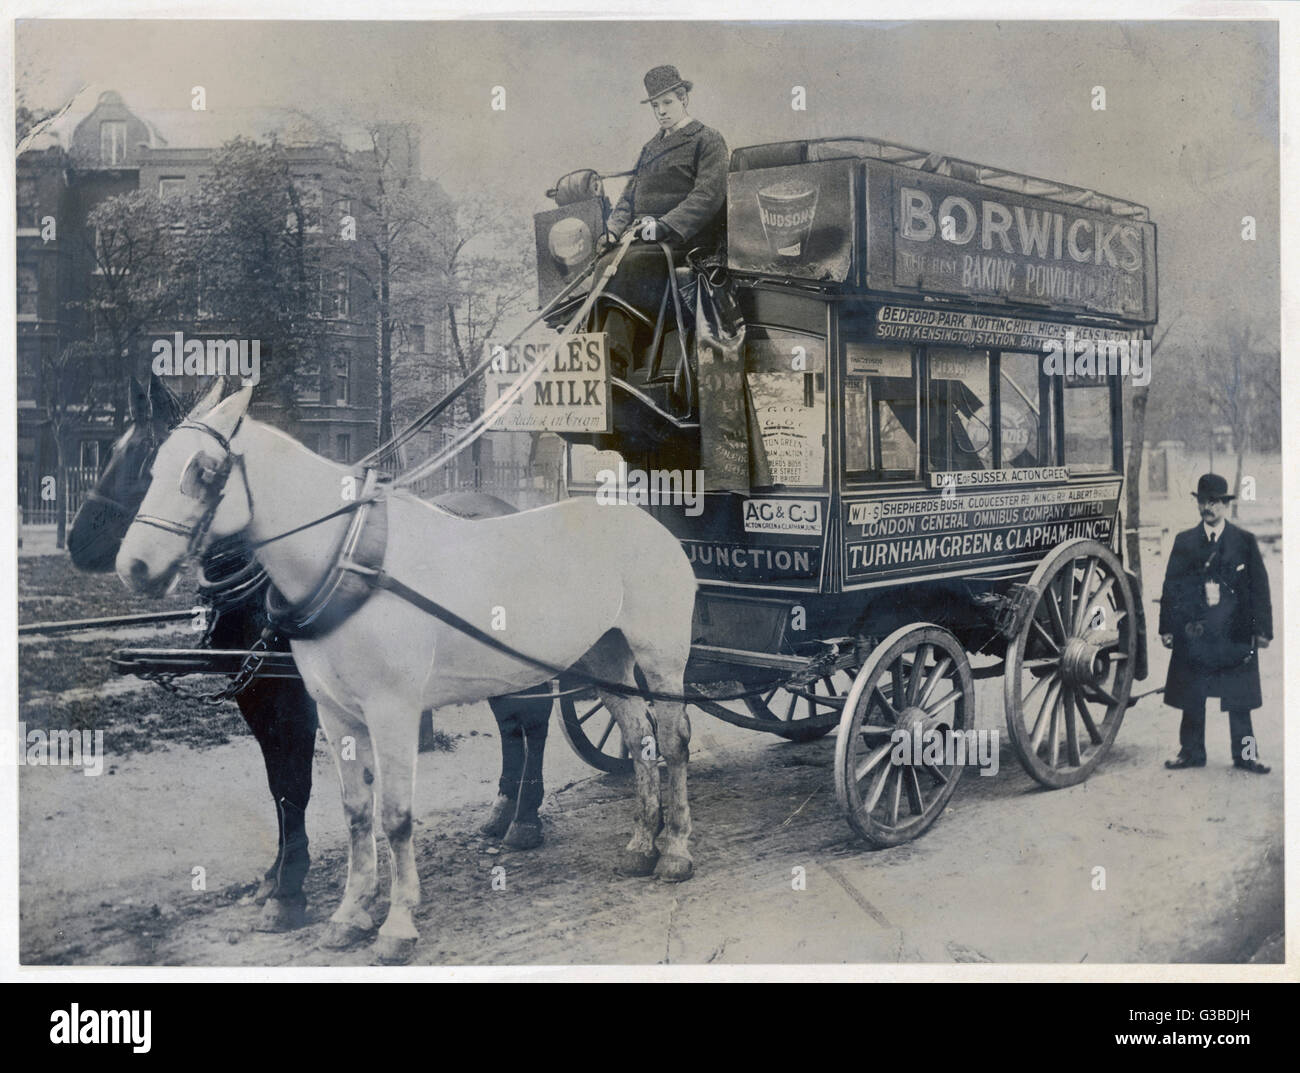 This horse bus of the London  General Omnibus Company plies  between Turnham Green and  Clapham, in south London. - Stock Image